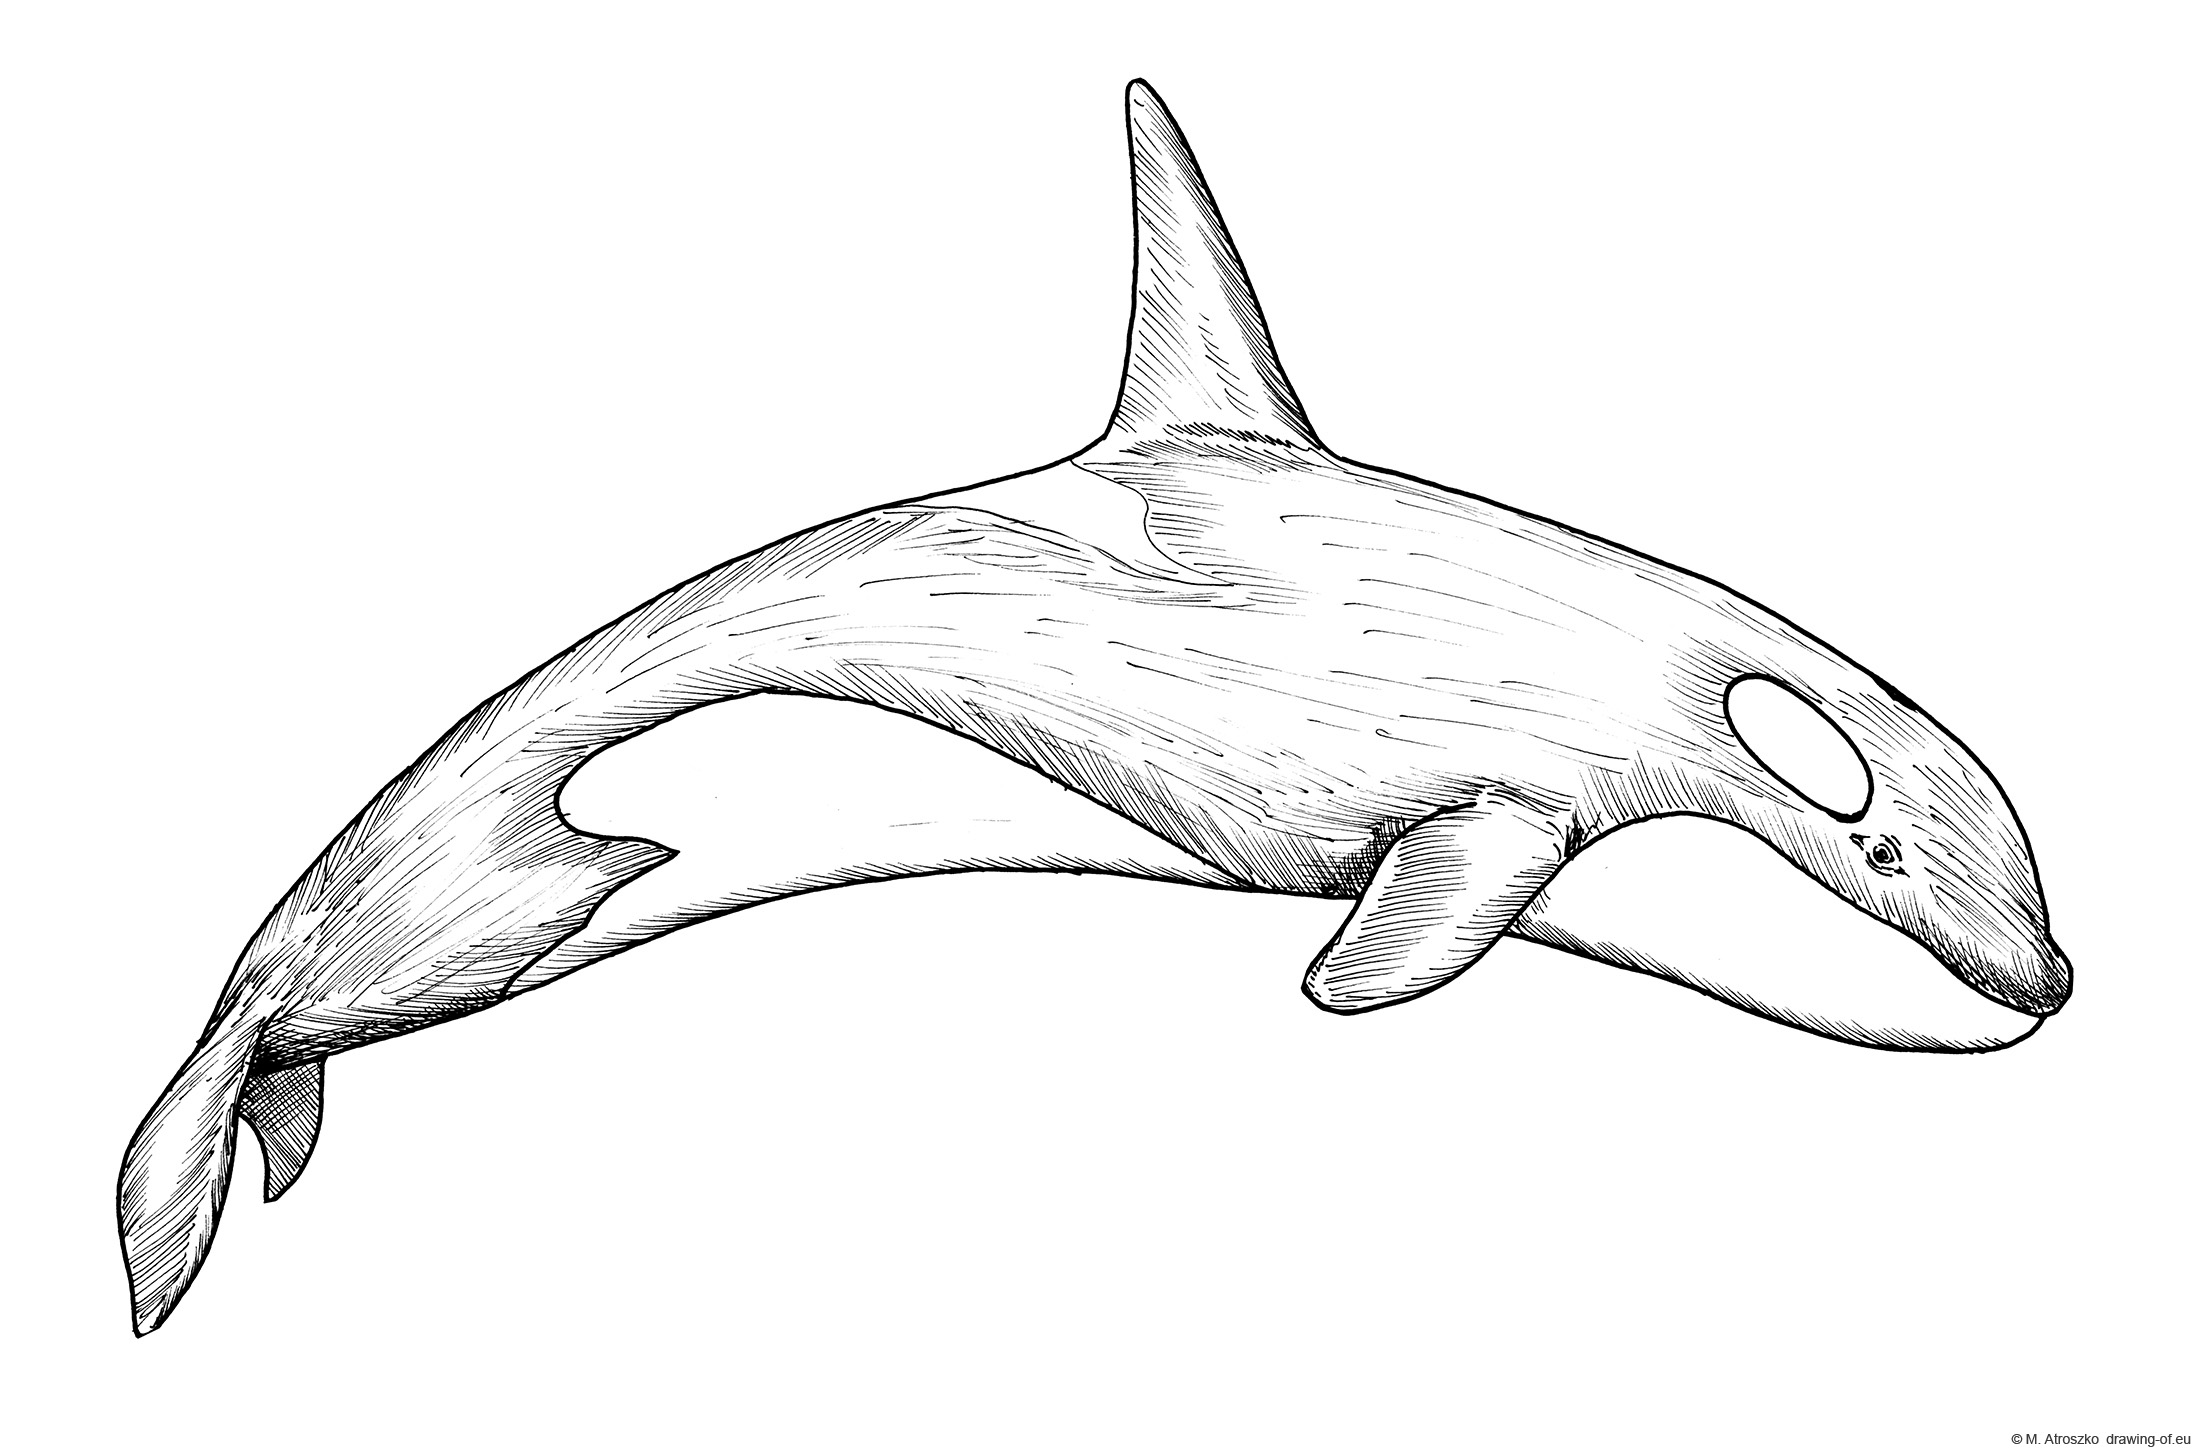 Drawing of orca - Killer whale. Coloring page.